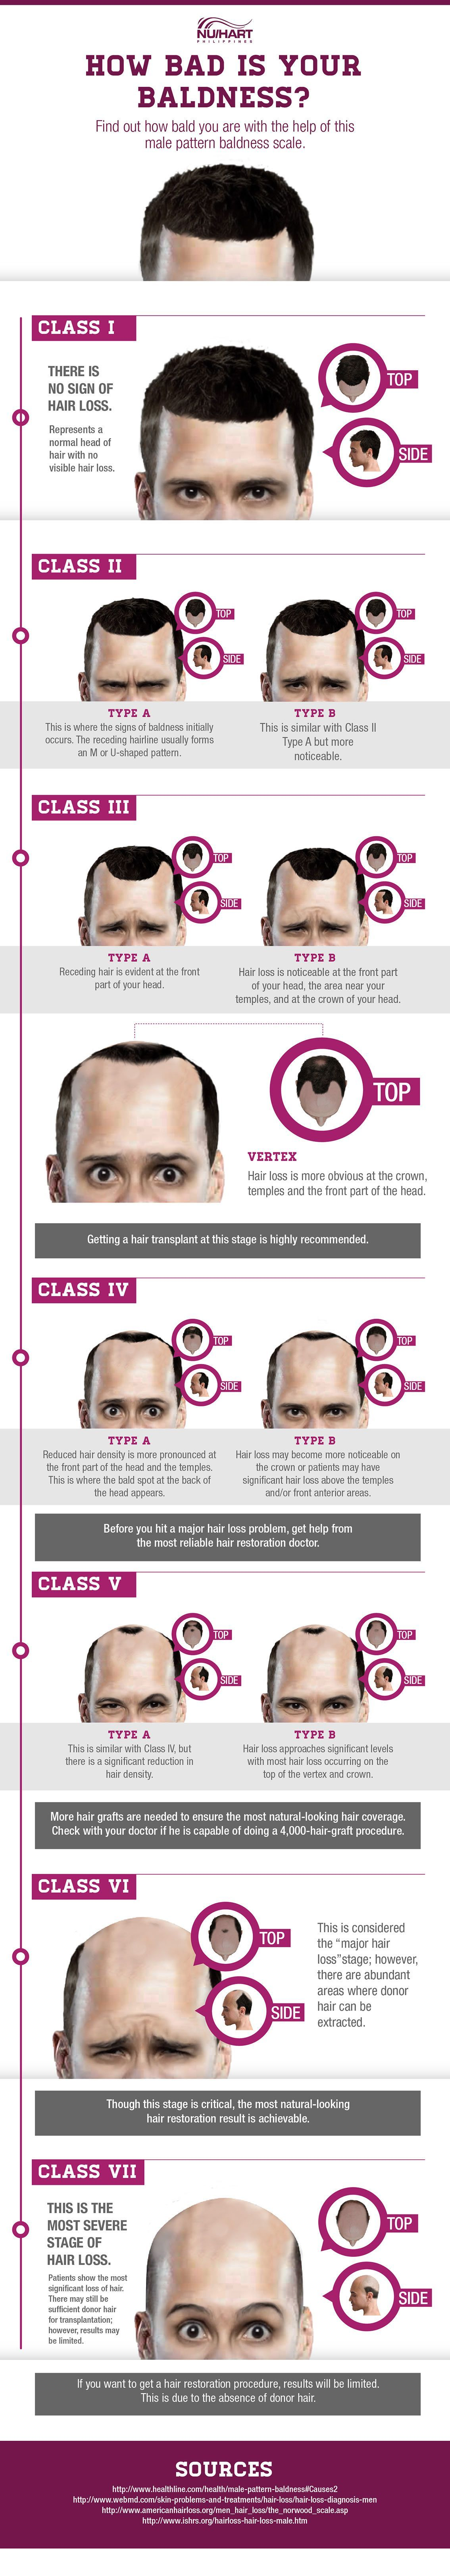 Male pattern baldness NW  Man Stuff  Pinterest  Bald man and